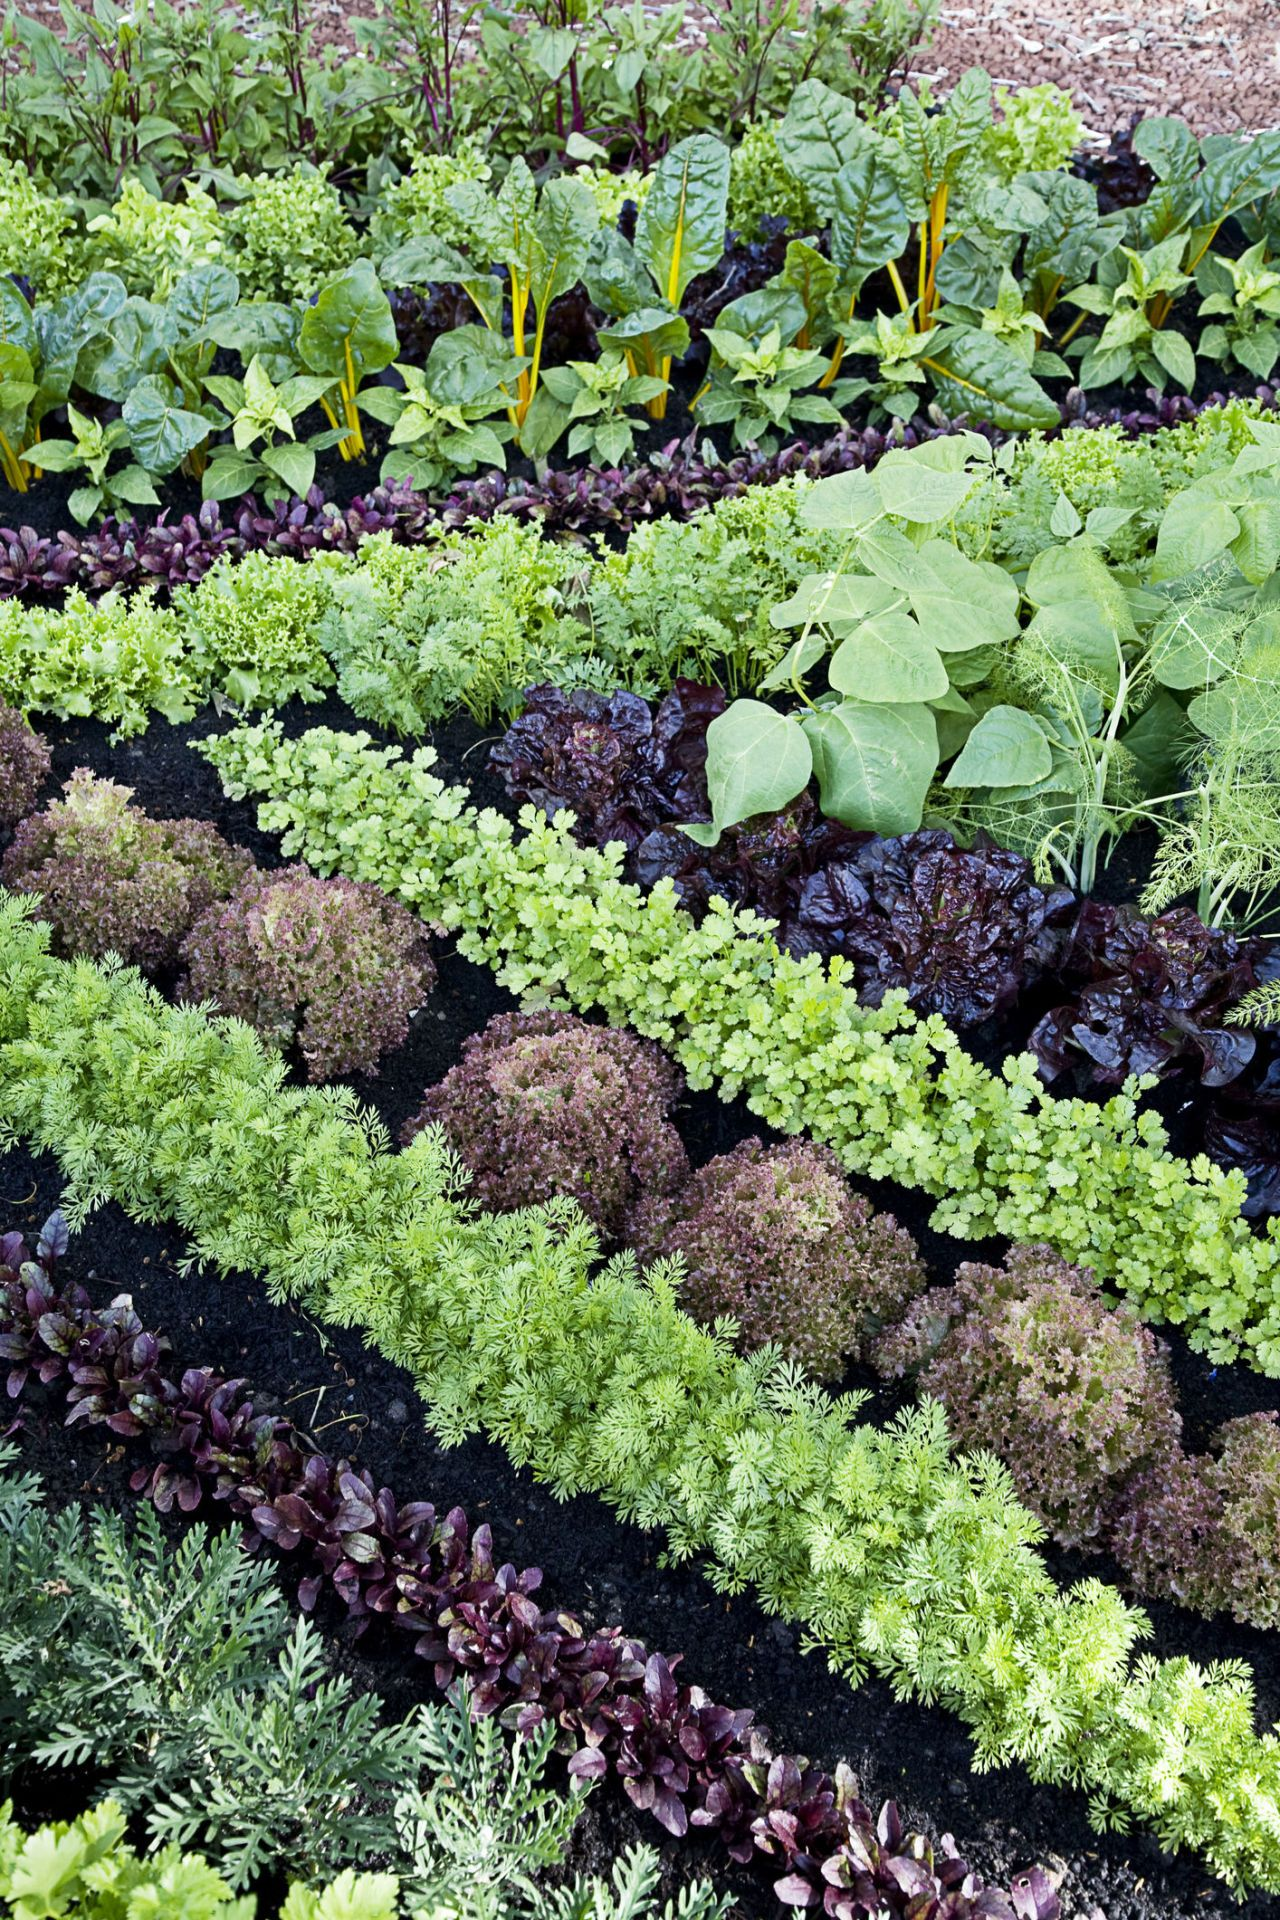 Companion Planting - 11 plant combos you should grow side-by-side | found on